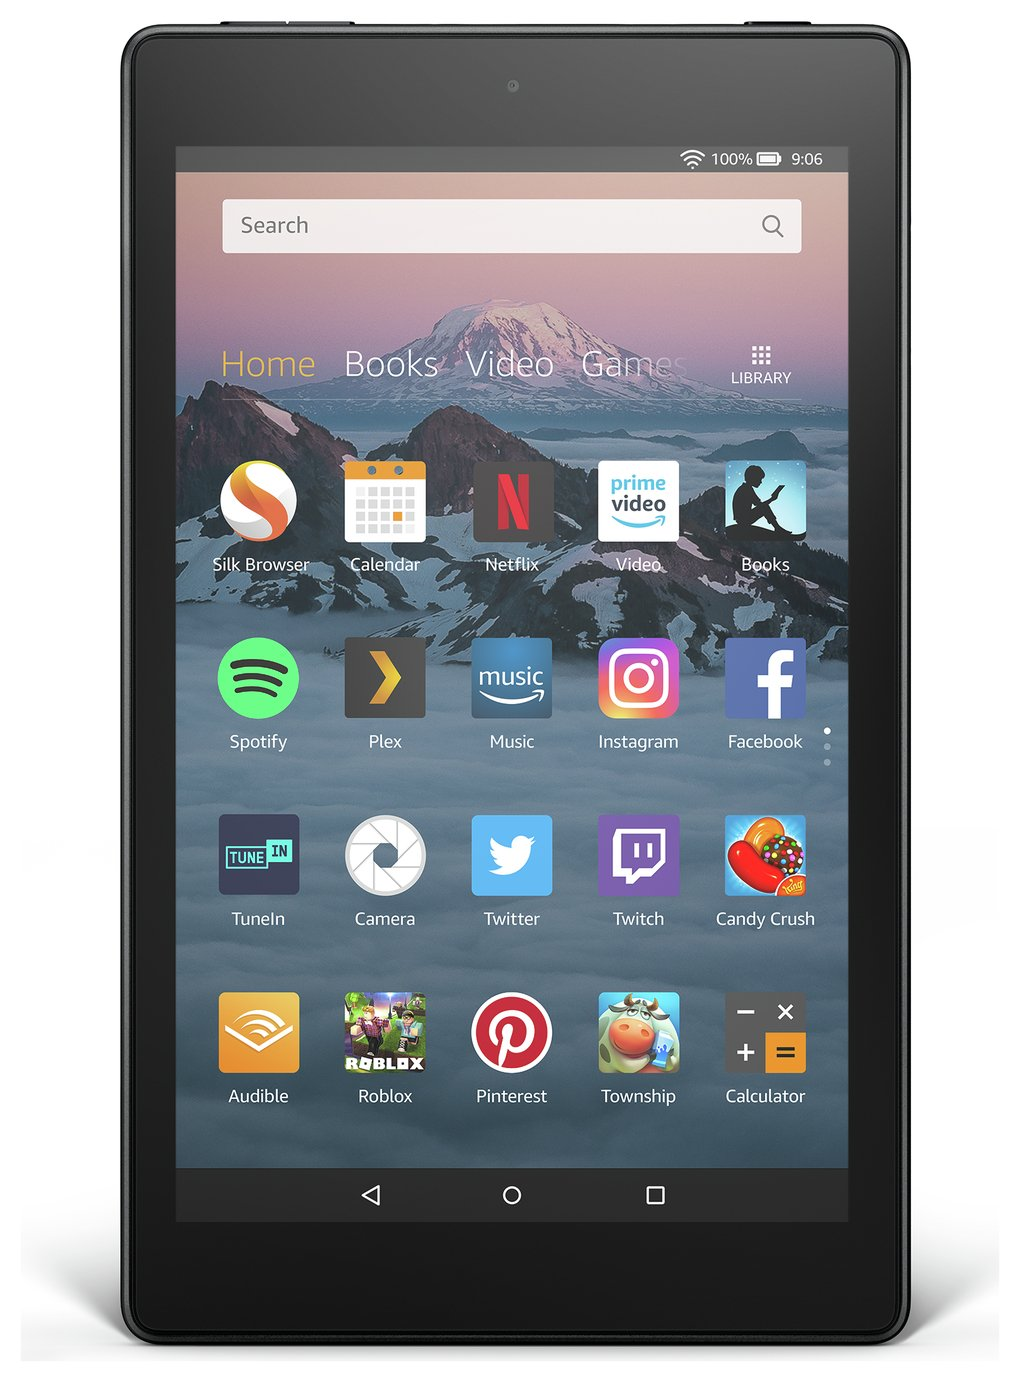 Amazon Fire HD 8 Alexa 8 Inch 16GB Tablet - Black